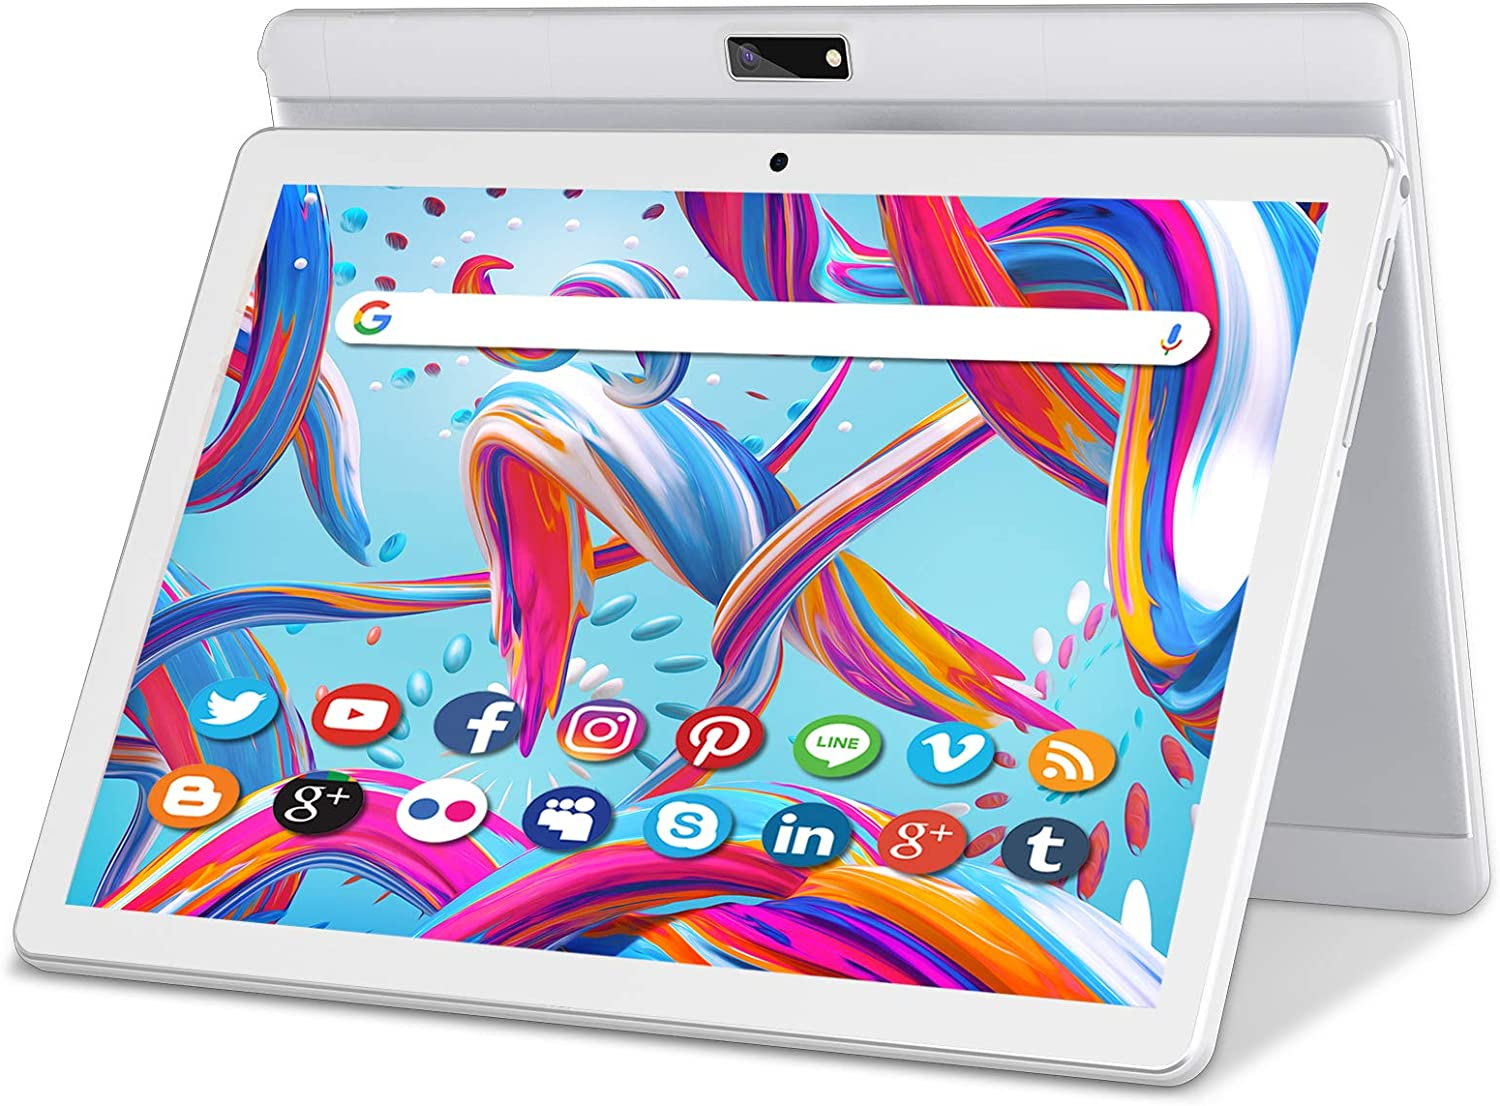 Tablet 10 Inch Android 9 HD Touchscreen Phone Tablets with Sim Card, Quad Core, 32GB ROM /128 GB Expand, 3G Phone Call, WiFi, Bluetooth, Dual Camera, GPS, GMS Google Certified Tablet PC, (White)